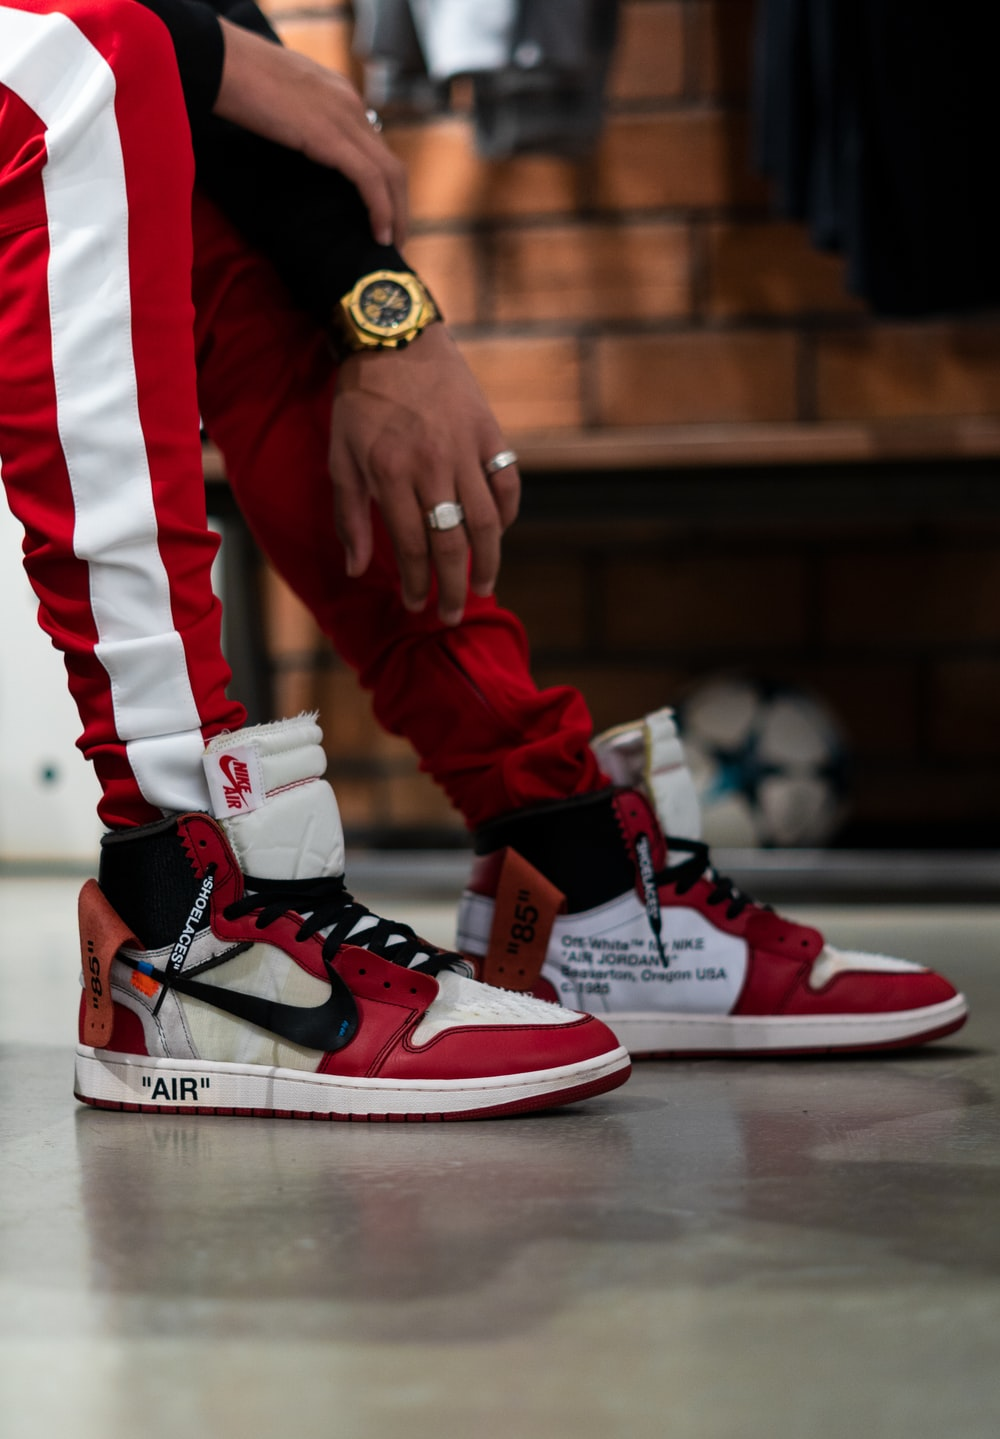 82d6661491e1 ... release date 0bbcd 5628b  amazon person wearing chicago air jordan 1 x  off white 59442 beaef